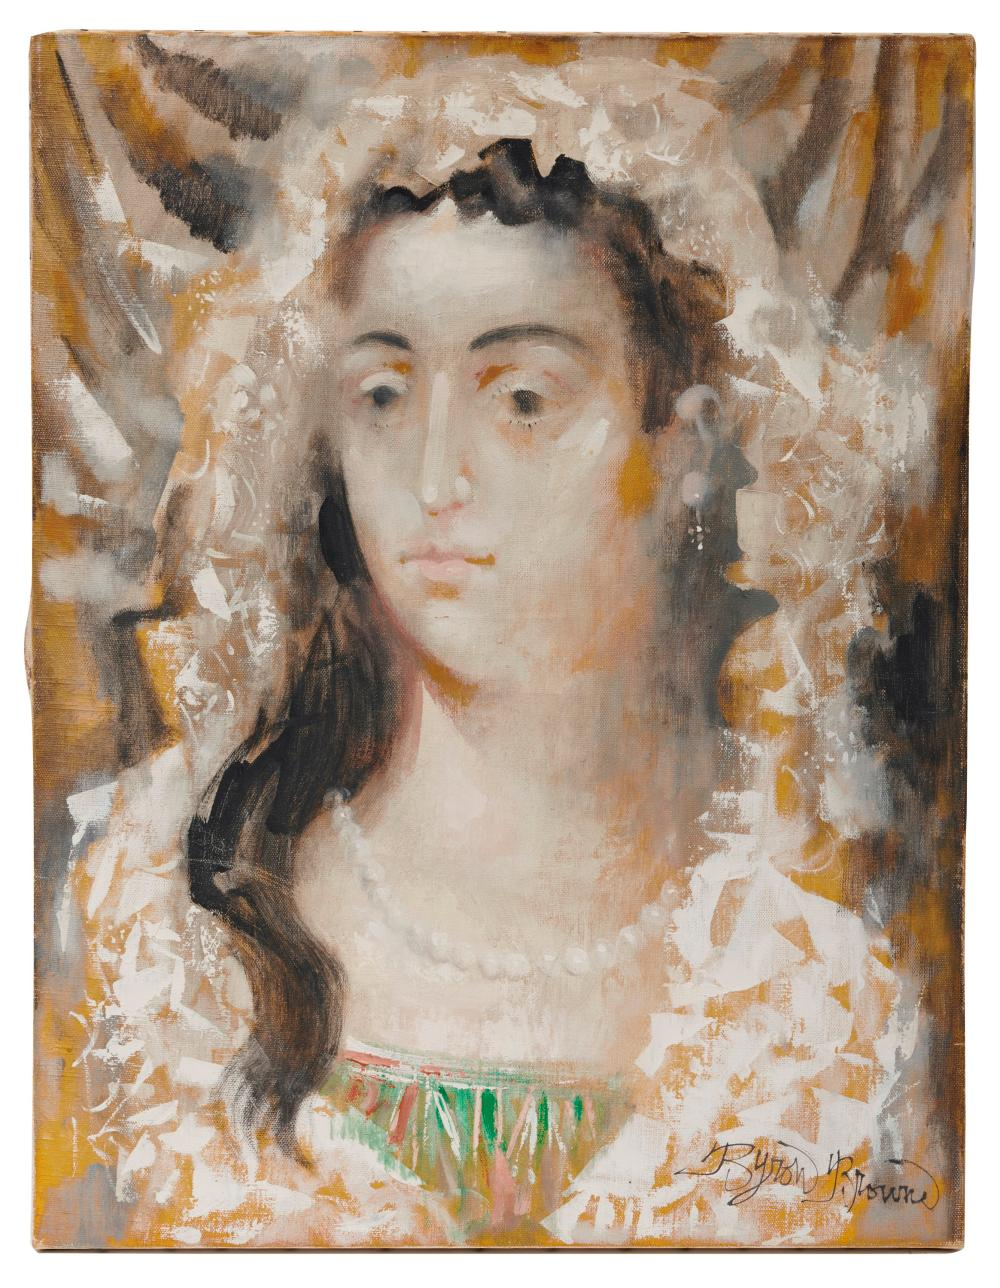 BYRON BROWNE, (American, 1907-1961), The Bride, 1960, oil on canvas, 26 x 20 in.